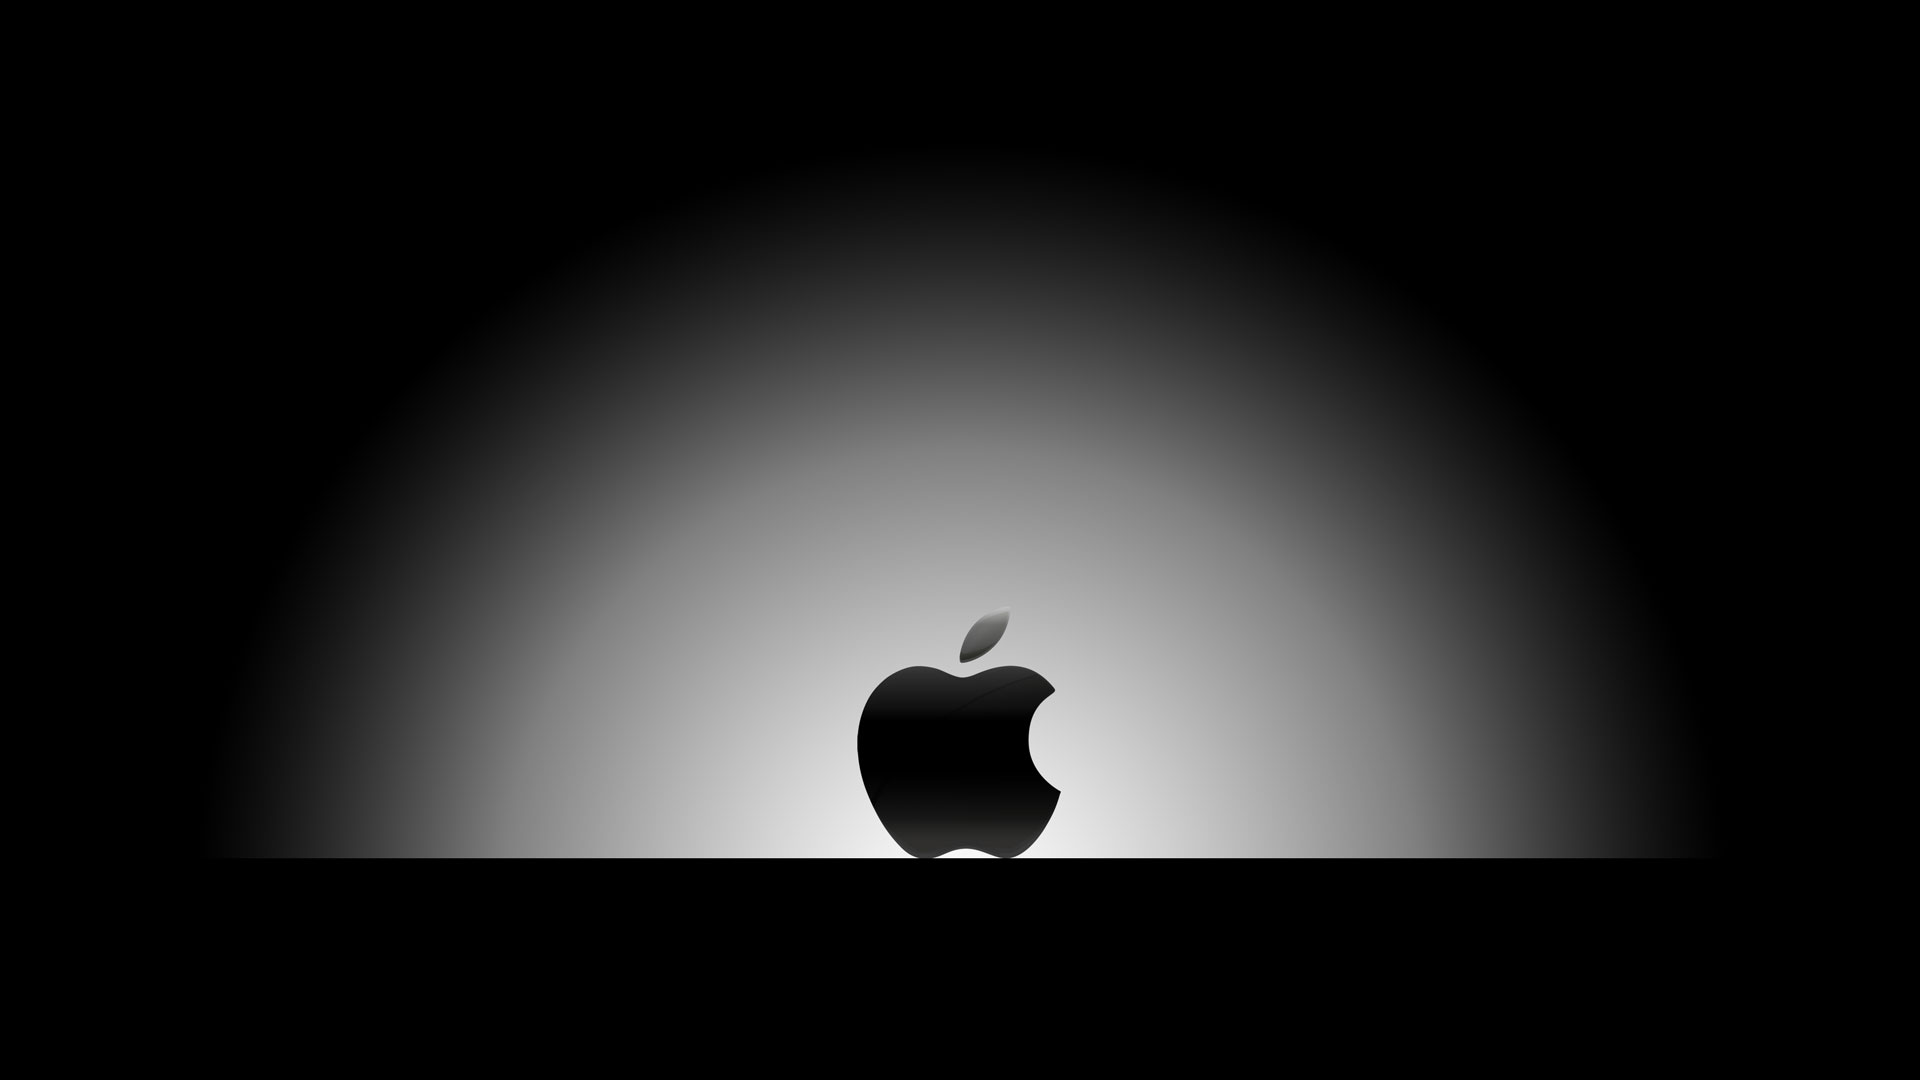 apple skull pirate wallpapers hd / desktop and mobile backgrounds